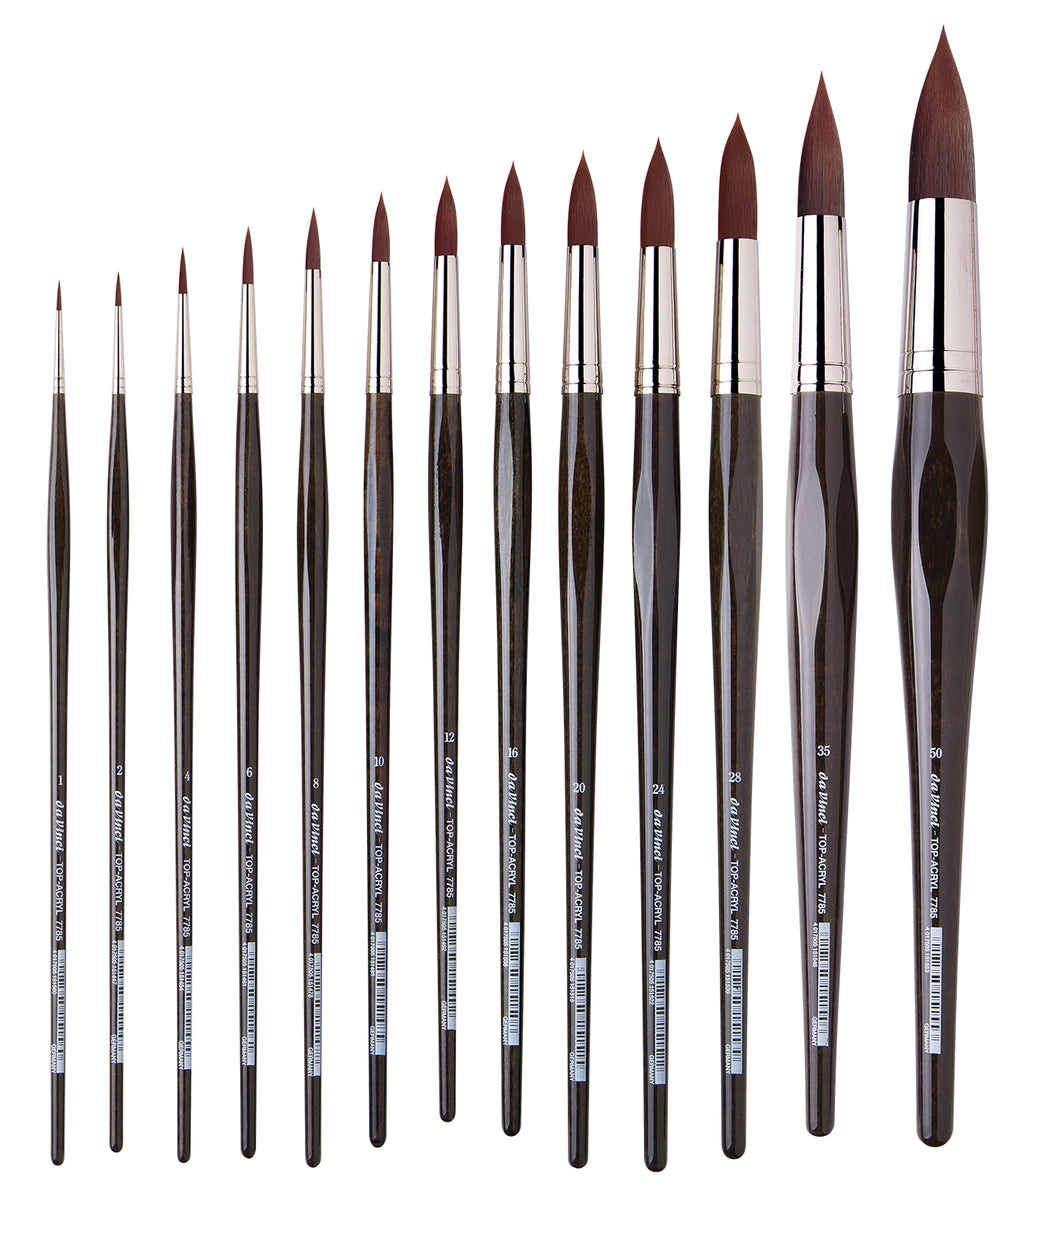 Da Vinci TOP-ACRYL Series 7785 Synthetic Round Brushes